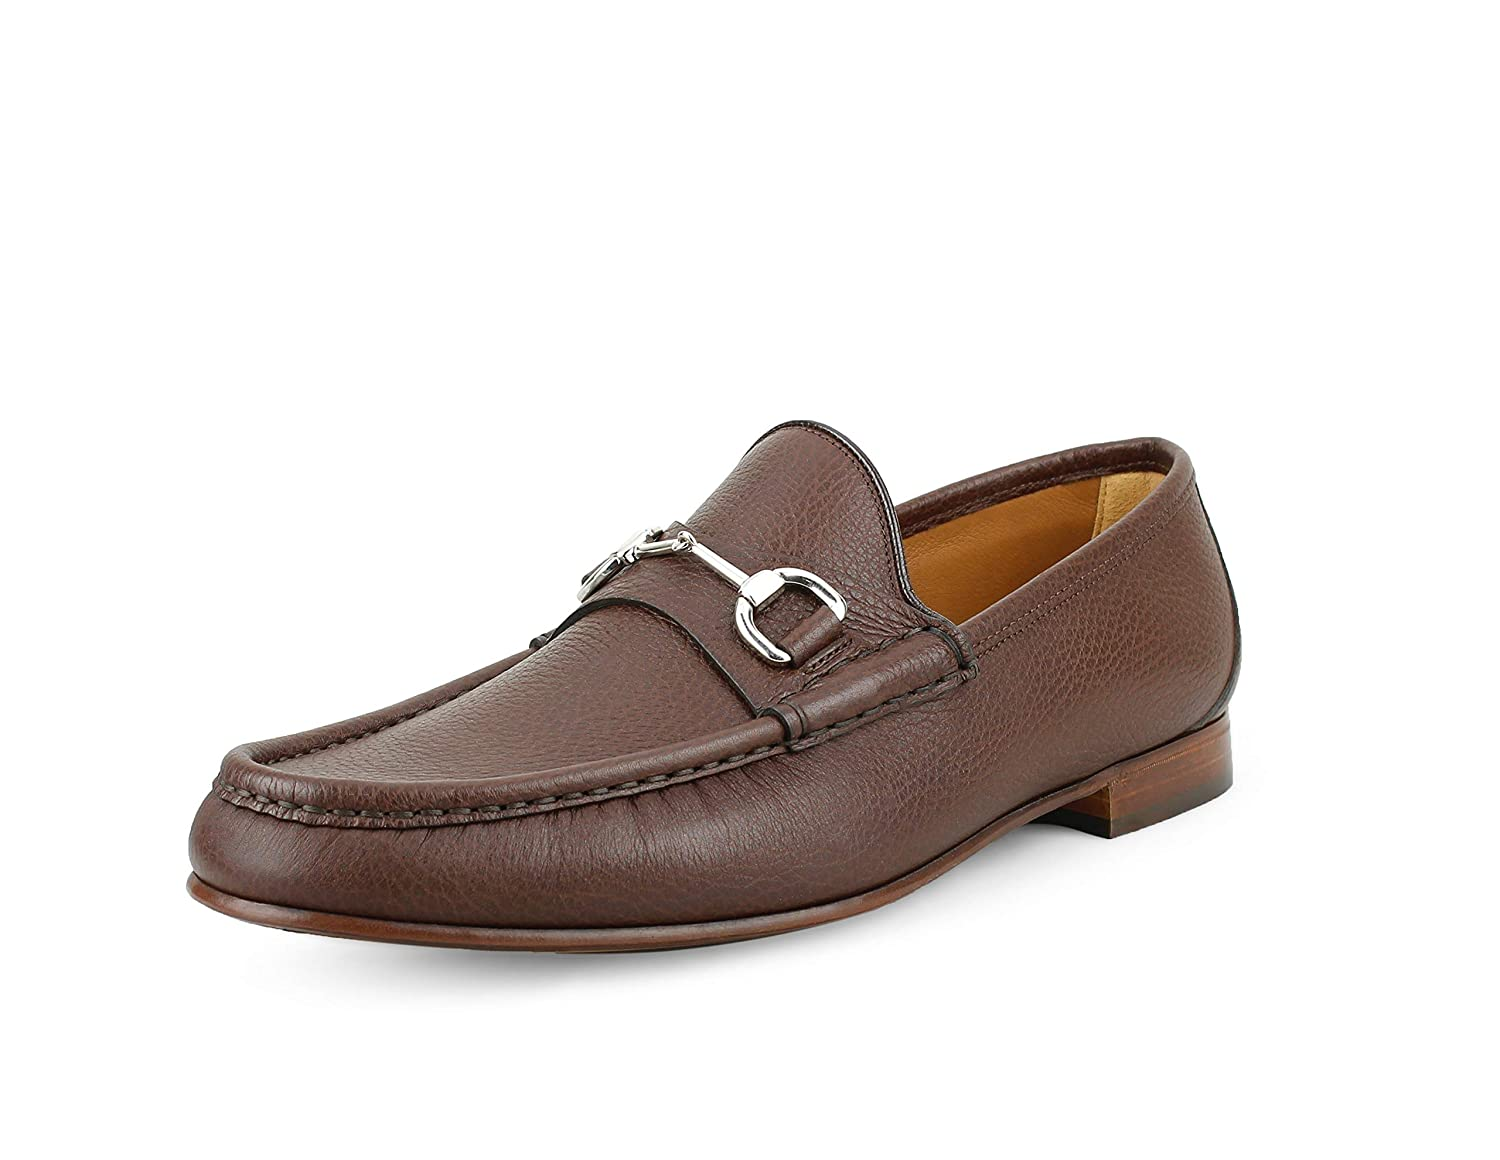 402174d8d Amazon.com: Gucci Men's Classic Pebbled Leather Horsebit Loafer, Cocoa ( Brown) (12.5 US / 12 UK): Shoes